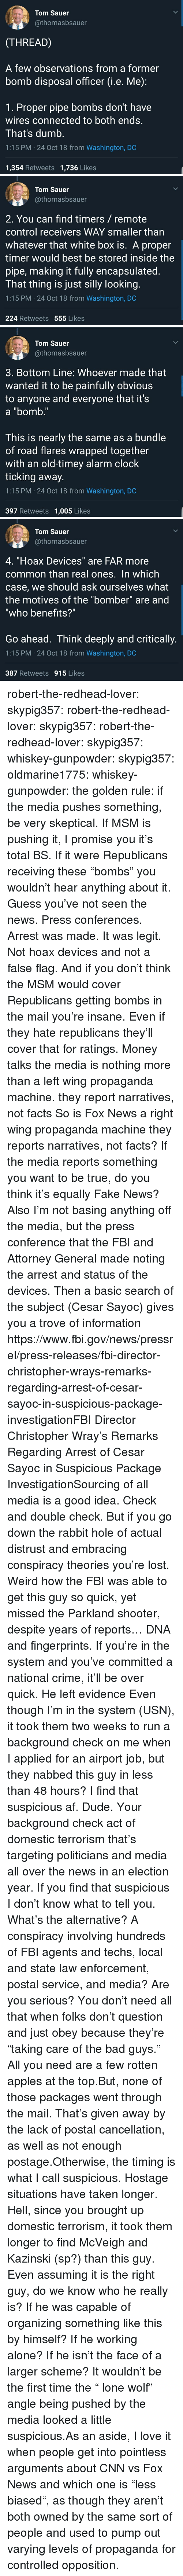 "You Serious: Tom Sauer  @thomasbsauer  (THREAD)  A few observations from a former  bomb disposal officer G.e. Me)  1. Proper pipe bombs don't have  wires connected to both ends.  That's dumb.  1:15 PM 24 Oct 18 from Washington, DC  1,354 Retweets 1,736 Likes   Tom Sauer  @thomasbsauer  2. You can find timers/ remote  control receivers WAY smaller than  whatever that white box is. A proper  timer would best be stored inside the  pipe, making it fully encapsulated  I hat thing is just silly looking  1:15 PM 24 Oct 18 from Washington, DC  224 Retweets 555 Likes   Tom Sauer  @thomasbsauer  3. Bottom Line: Whoever made that  wanted it to be painfully obvious  to anyone and everyone that it's  a ""bomb.""  This is nearly the same as a bundle  of road flares wrapped together  with an old-timey alarm clock  ticking away.  1:15 PM 24 Oct 18 from Washington, DC  397 Retweets 1,005 Likes   Tom Sauer  @thomasbsauer  4, ""Hoax Devices"" are FAR more  common than real ones. In which  case, we should ask ourselves what  the motives of the ""bomber"" are and  ""who benefits?""  Go ahead. Think deeply and critically.  1:15 PM 24 Oct 18 from Washington, DC  387 Retweets 915 Likes robert-the-redhead-lover:  skypig357:  robert-the-redhead-lover:  skypig357:  robert-the-redhead-lover:  skypig357:  whiskey-gunpowder:  skypig357:  oldmarine1775:  whiskey-gunpowder: the golden rule: if the media pushes something, be very skeptical. If MSM is pushing it, I promise you it's total BS. If it were Republicans receiving these ""bombs"" you wouldn't hear anything about it.   Guess you've not seen the news. Press conferences. Arrest was made. It was legit. Not hoax devices and not a false flag. And if you don't think the MSM would cover Republicans getting bombs in the mail you're insane. Even if they hate republicans they'll cover that for ratings. Money talks   the media is nothing more than a left wing propaganda machine. they report narratives, not facts  So is Fox News a right wing propaganda machine they reports narratives, not facts? If the media reports something you want to be true, do you think it's equally Fake News? Also I'm not basing anything off the media, but the press conference that the FBI and Attorney General made noting the arrest and status of the devices. Then a basic search of the subject (Cesar Sayoc) gives you a trove of information https://www.fbi.gov/news/pressrel/press-releases/fbi-director-christopher-wrays-remarks-regarding-arrest-of-cesar-sayoc-in-suspicious-package-investigationFBI Director Christopher Wray's Remarks Regarding Arrest of Cesar Sayoc in Suspicious Package InvestigationSourcing of all media is a good idea. Check and double check. But if you go down the rabbit hole of actual distrust and embracing conspiracy theories you're lost.   Weird how the FBI was able to get this guy so quick, yet missed the Parkland shooter, despite years of reports…  DNA and fingerprints. If you're in the system and you've committed a national crime, it'll be over quick. He left evidence   Even though I'm in the system (USN), it took them two weeks to run a background check on me when I applied for an airport job, but they nabbed this guy in less than 48 hours? I find that suspicious af.  Dude. Your background check  act of domestic terrorism that's targeting politicians and media all over the news in an election year. If you find that suspicious I don't know what to tell you. What's the alternative? A conspiracy involving hundreds of FBI agents and techs, local and state law enforcement, postal service, and media? Are you serious?   You don't need all that when folks don't question and just obey because they're ""taking care of the bad guys."" All you need are a few rotten apples at the top.But, none of those packages went through the mail. That's given away by the lack of postal cancellation, as well as not enough postage.Otherwise, the timing is what I call suspicious. Hostage situations have taken longer. Hell, since you brought up domestic terrorism, it took them longer to find McVeigh and Kazinski (sp?) than this guy.  Even assuming it is the right guy, do we know who he really is? If he was capable of organizing something like this by himself? If he working alone? If he isn't the face of a larger scheme? It wouldn't be the first time the "" lone wolf"" angle being pushed by the media looked a little suspicious.As an aside, I love it when people get into pointless arguments about CNN vs Fox News and which one is ""less biased"", as though they aren't both owned by the same sort of people and used to pump out varying levels of propaganda for controlled opposition."